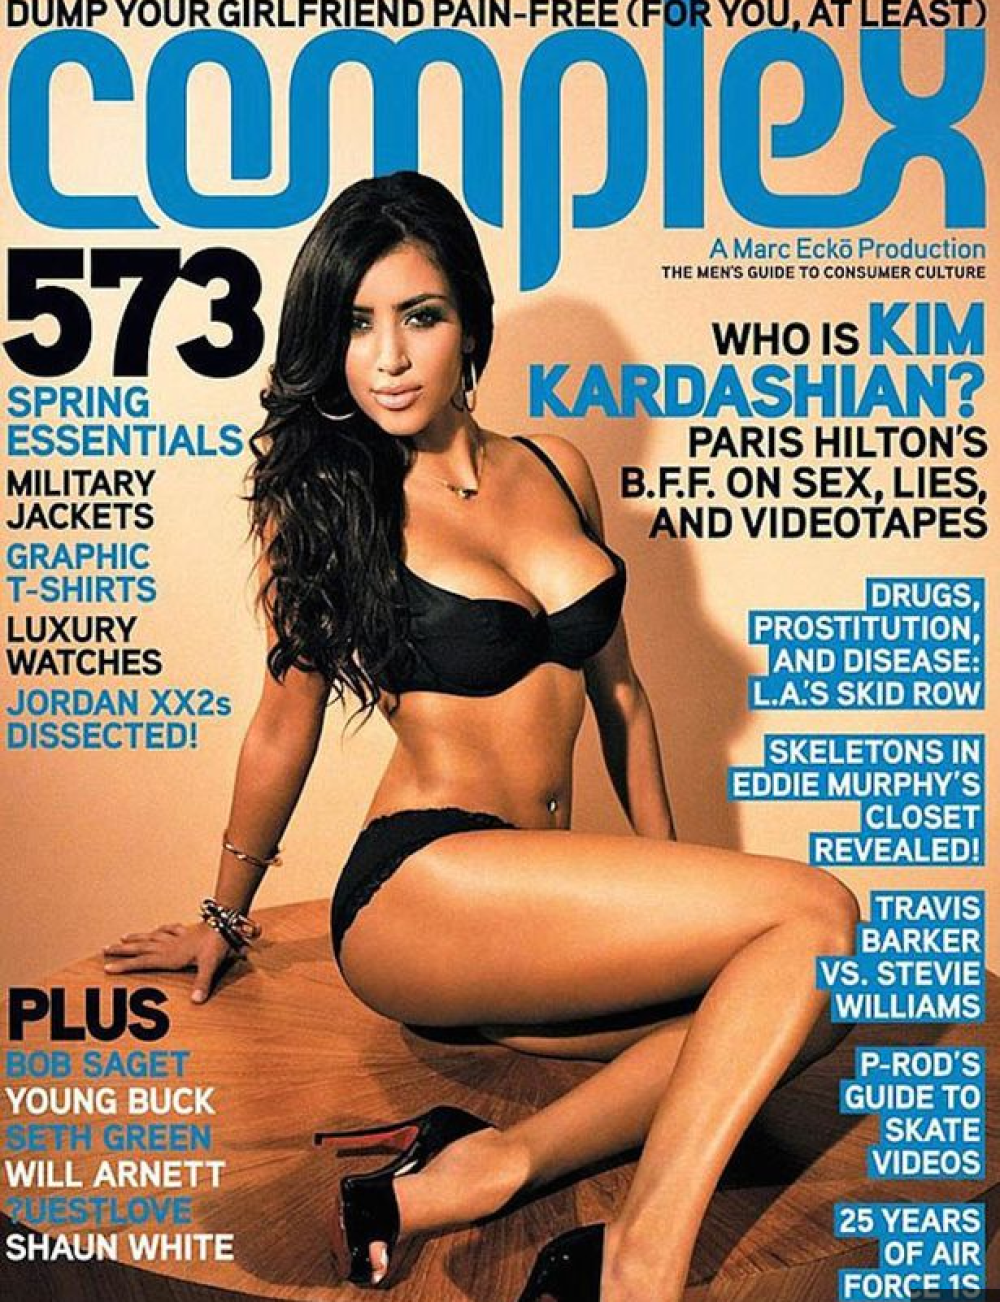 Kim Kardashian 2007 Complex Cover Story There Is No Ray J Sextape No Amount Of Money Could Convince Me To Release A Tape If I Had One